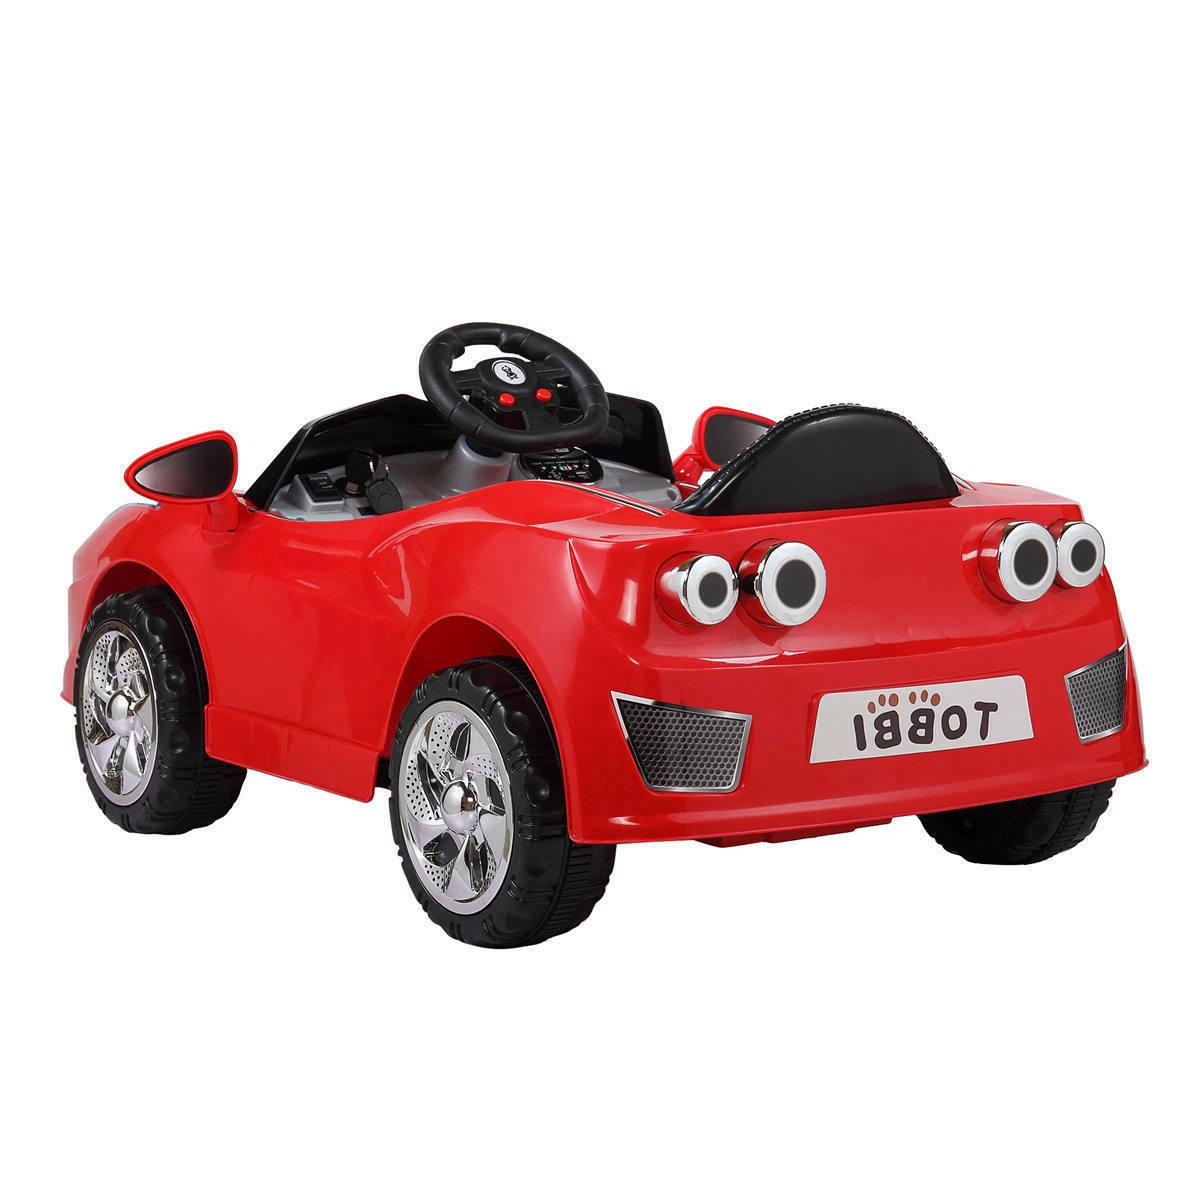 Kids Ride Electric 6V Power Gift W/ Remote Control